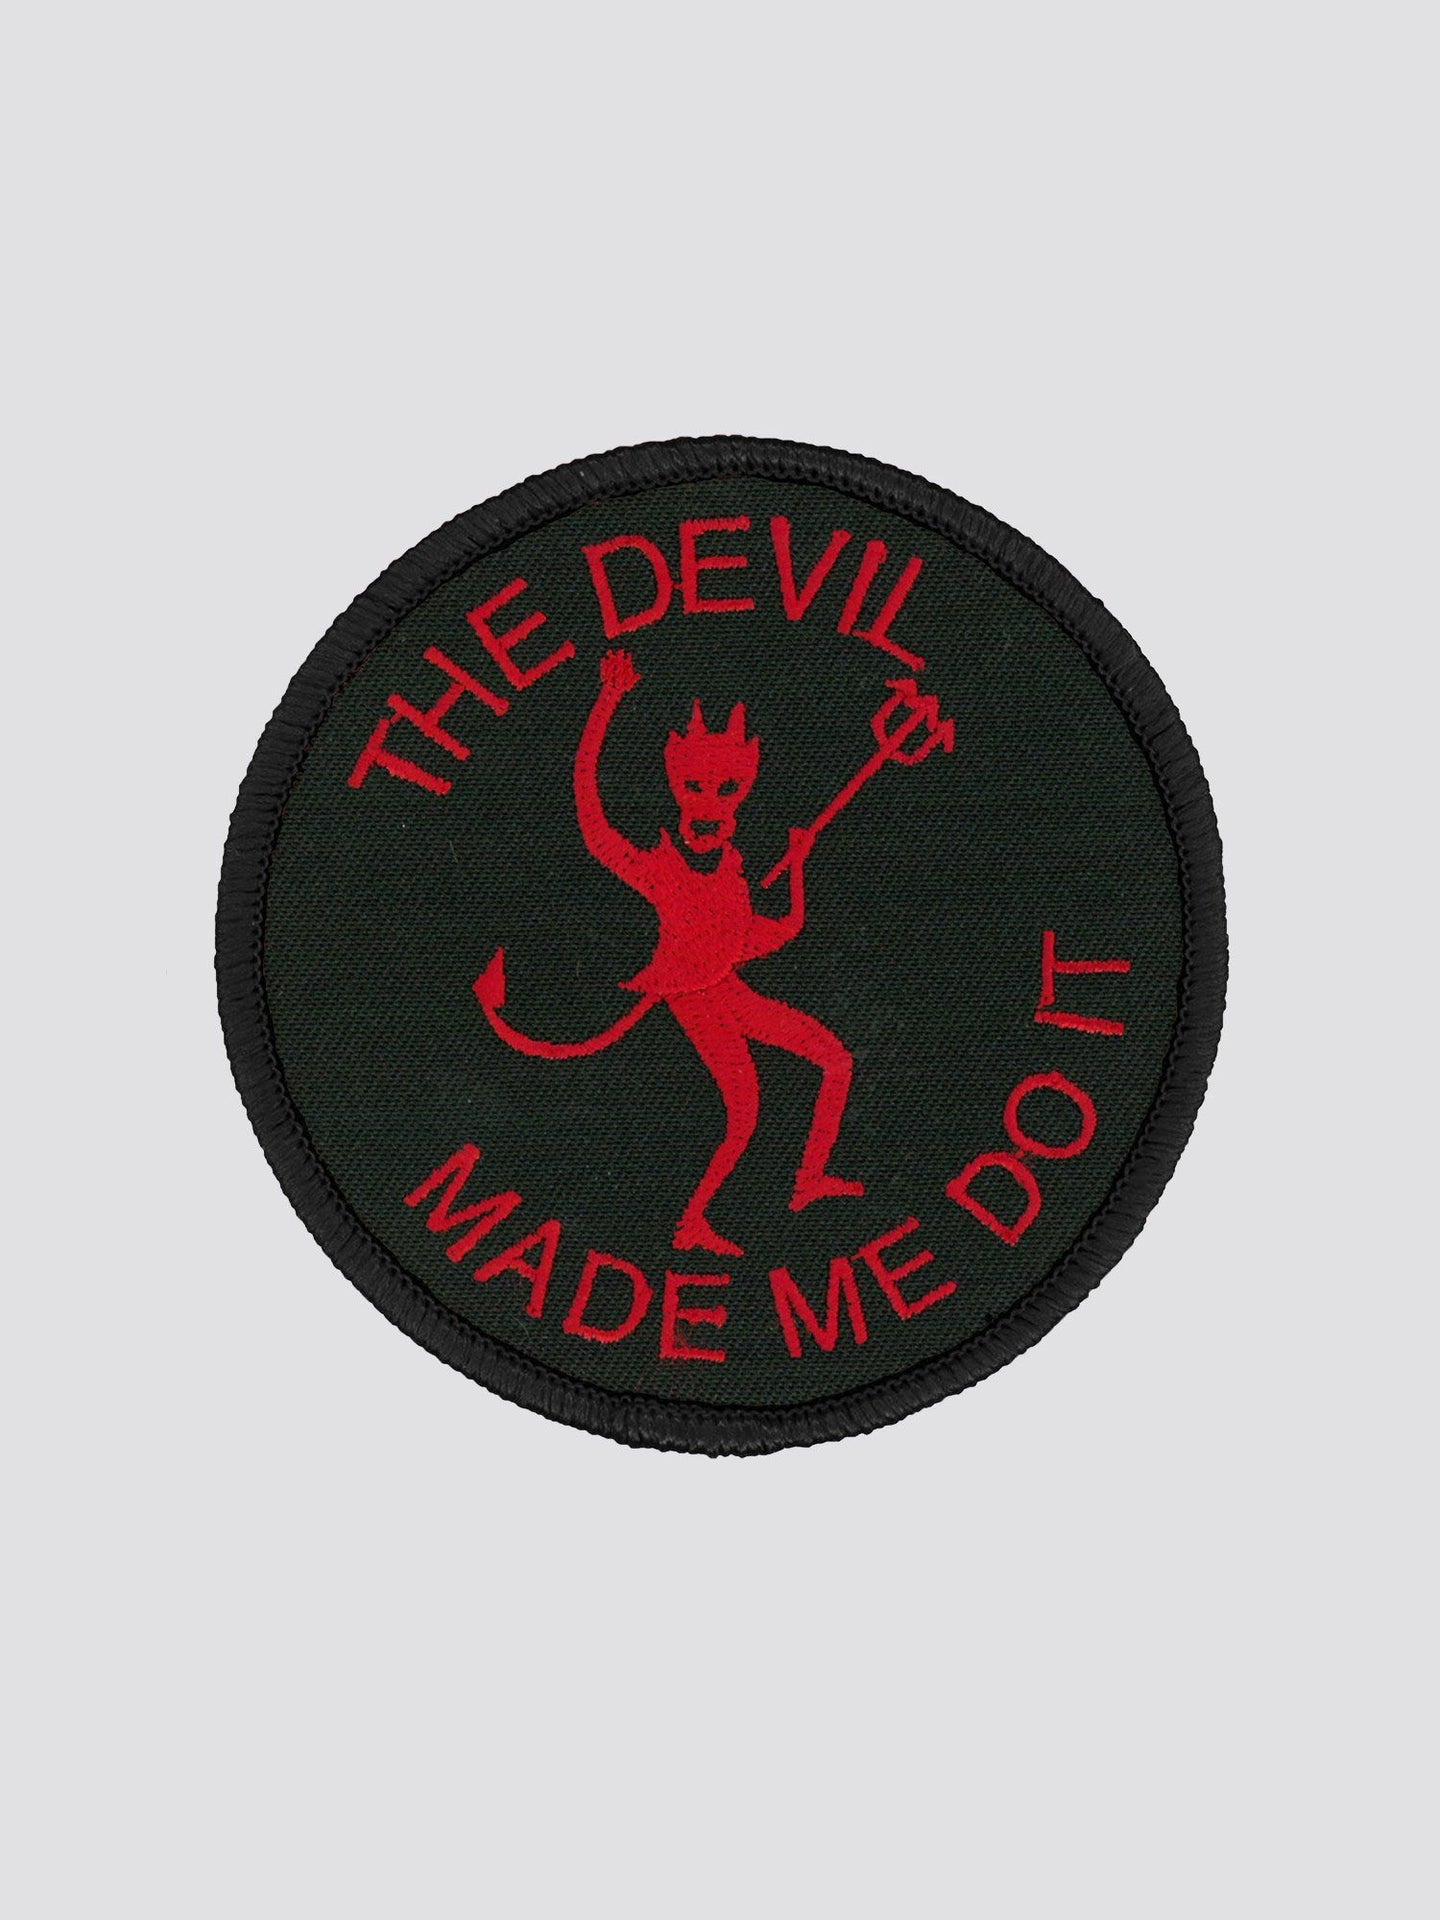 THE DEVIL MADE ME DO IT PATCH ACCESSORY Alpha Industries BLACK O/S